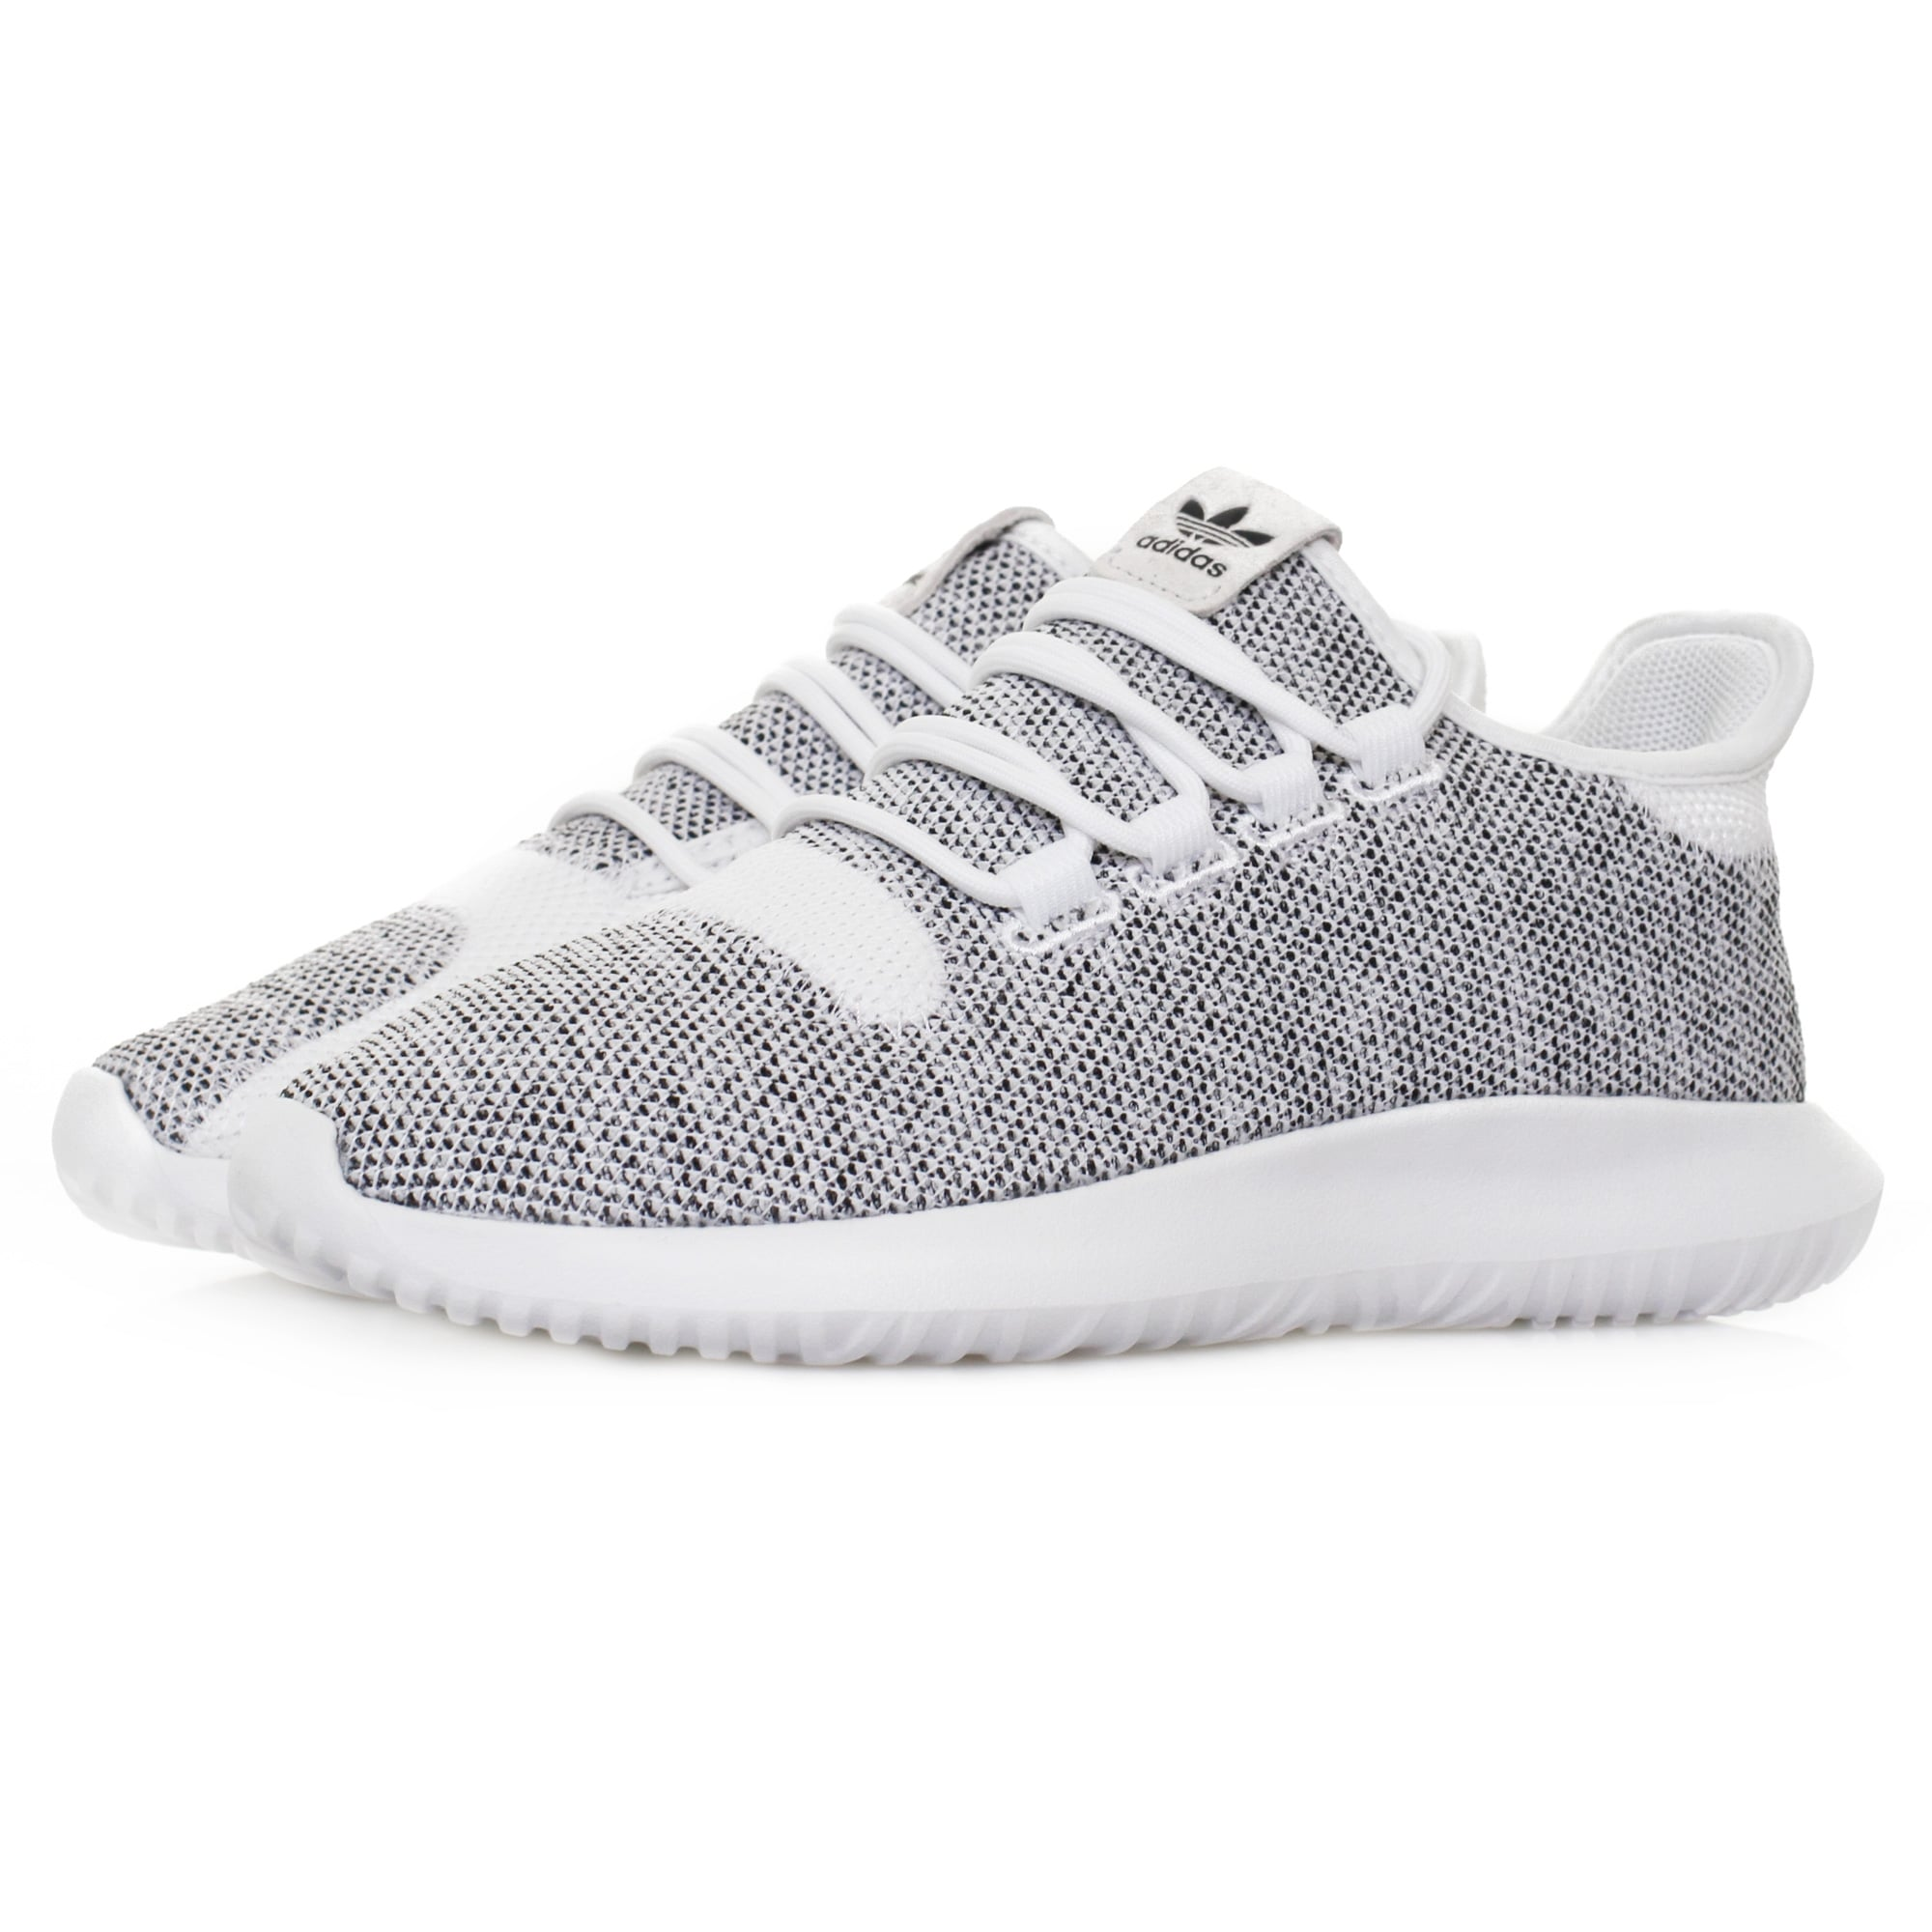 Ombre Tubulaire Hommes Adidas 3d Tricot dWP2kGvf